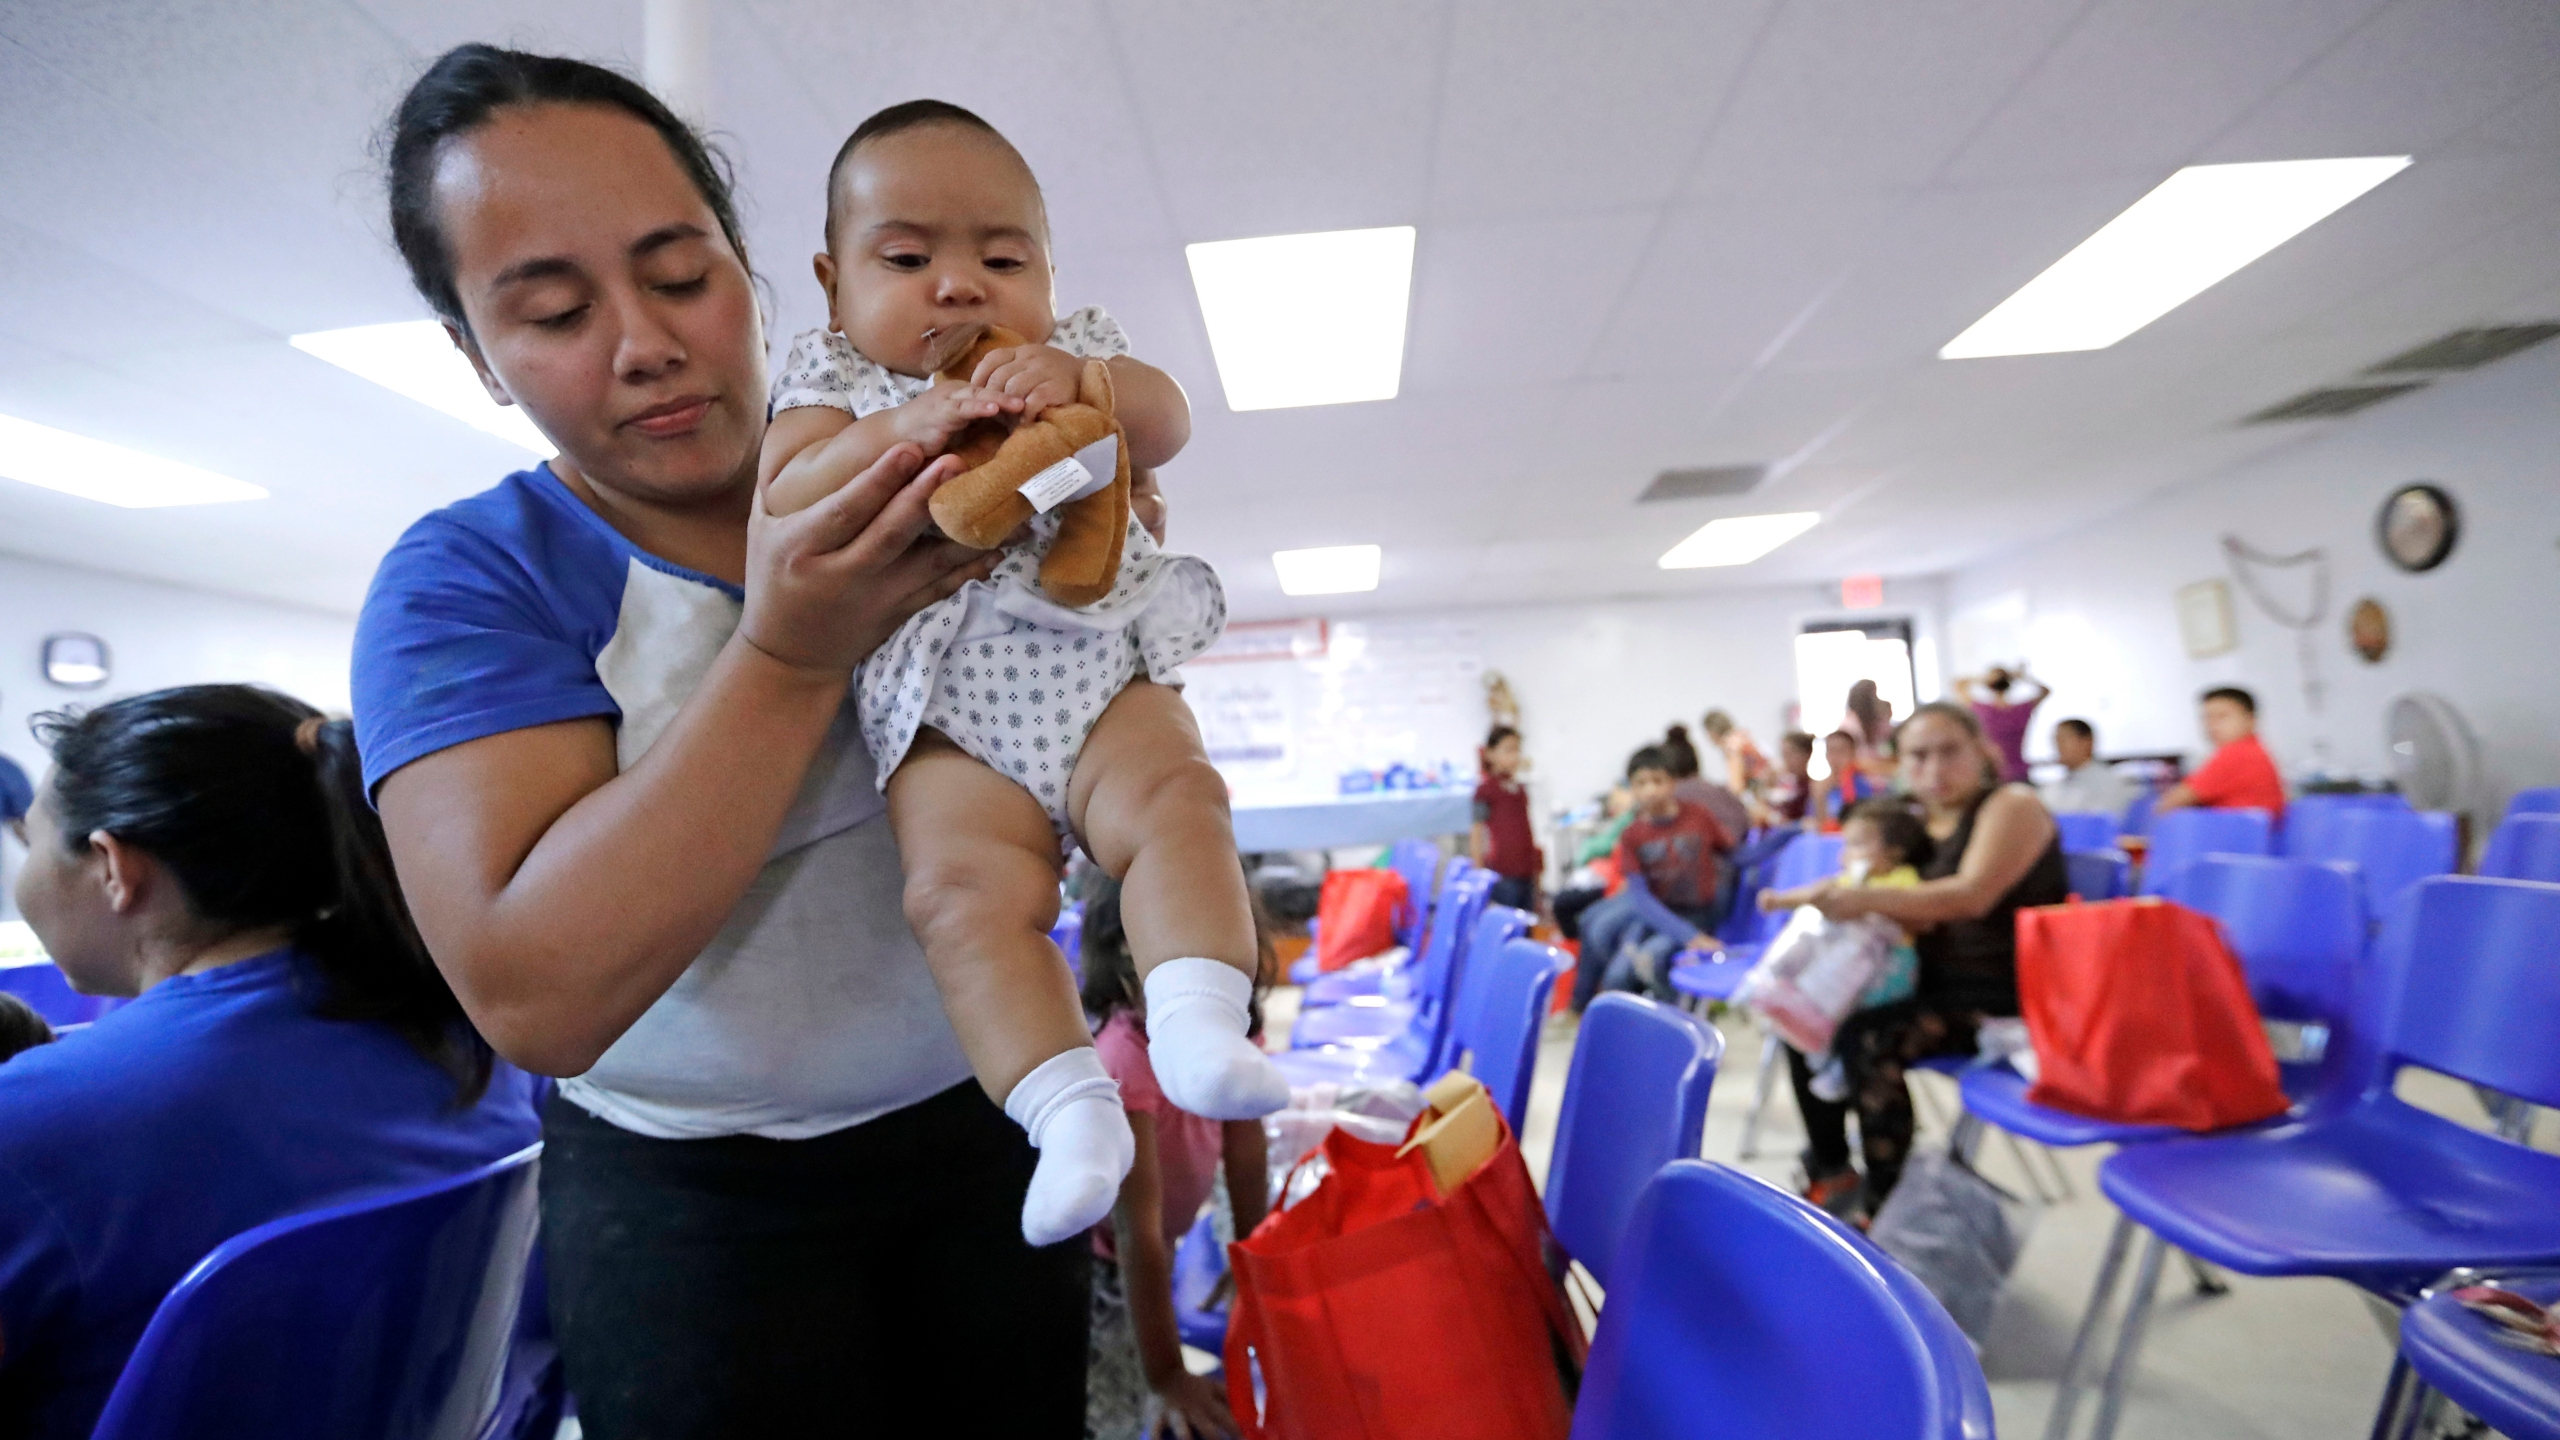 Immigration Separating Families_1529876458290